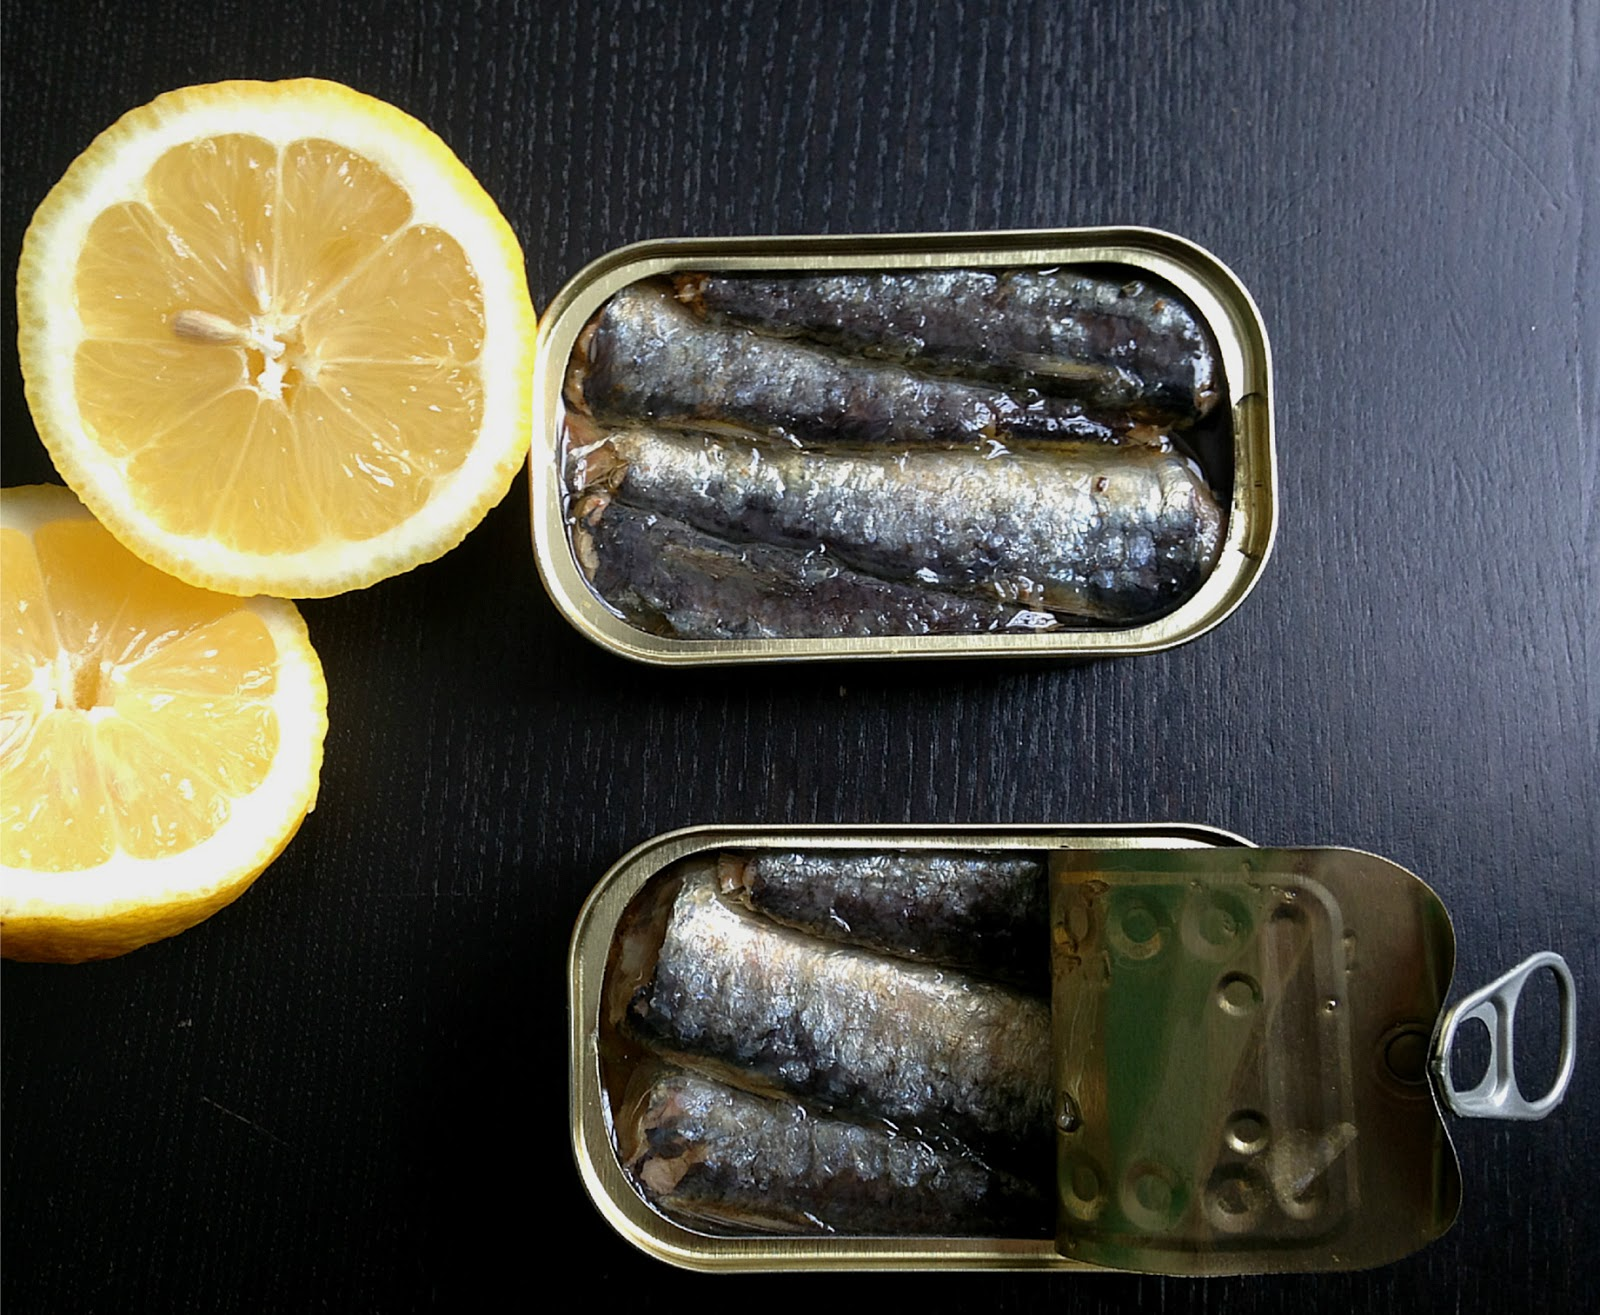 Canned sardines have been known to hold up to 30 years.